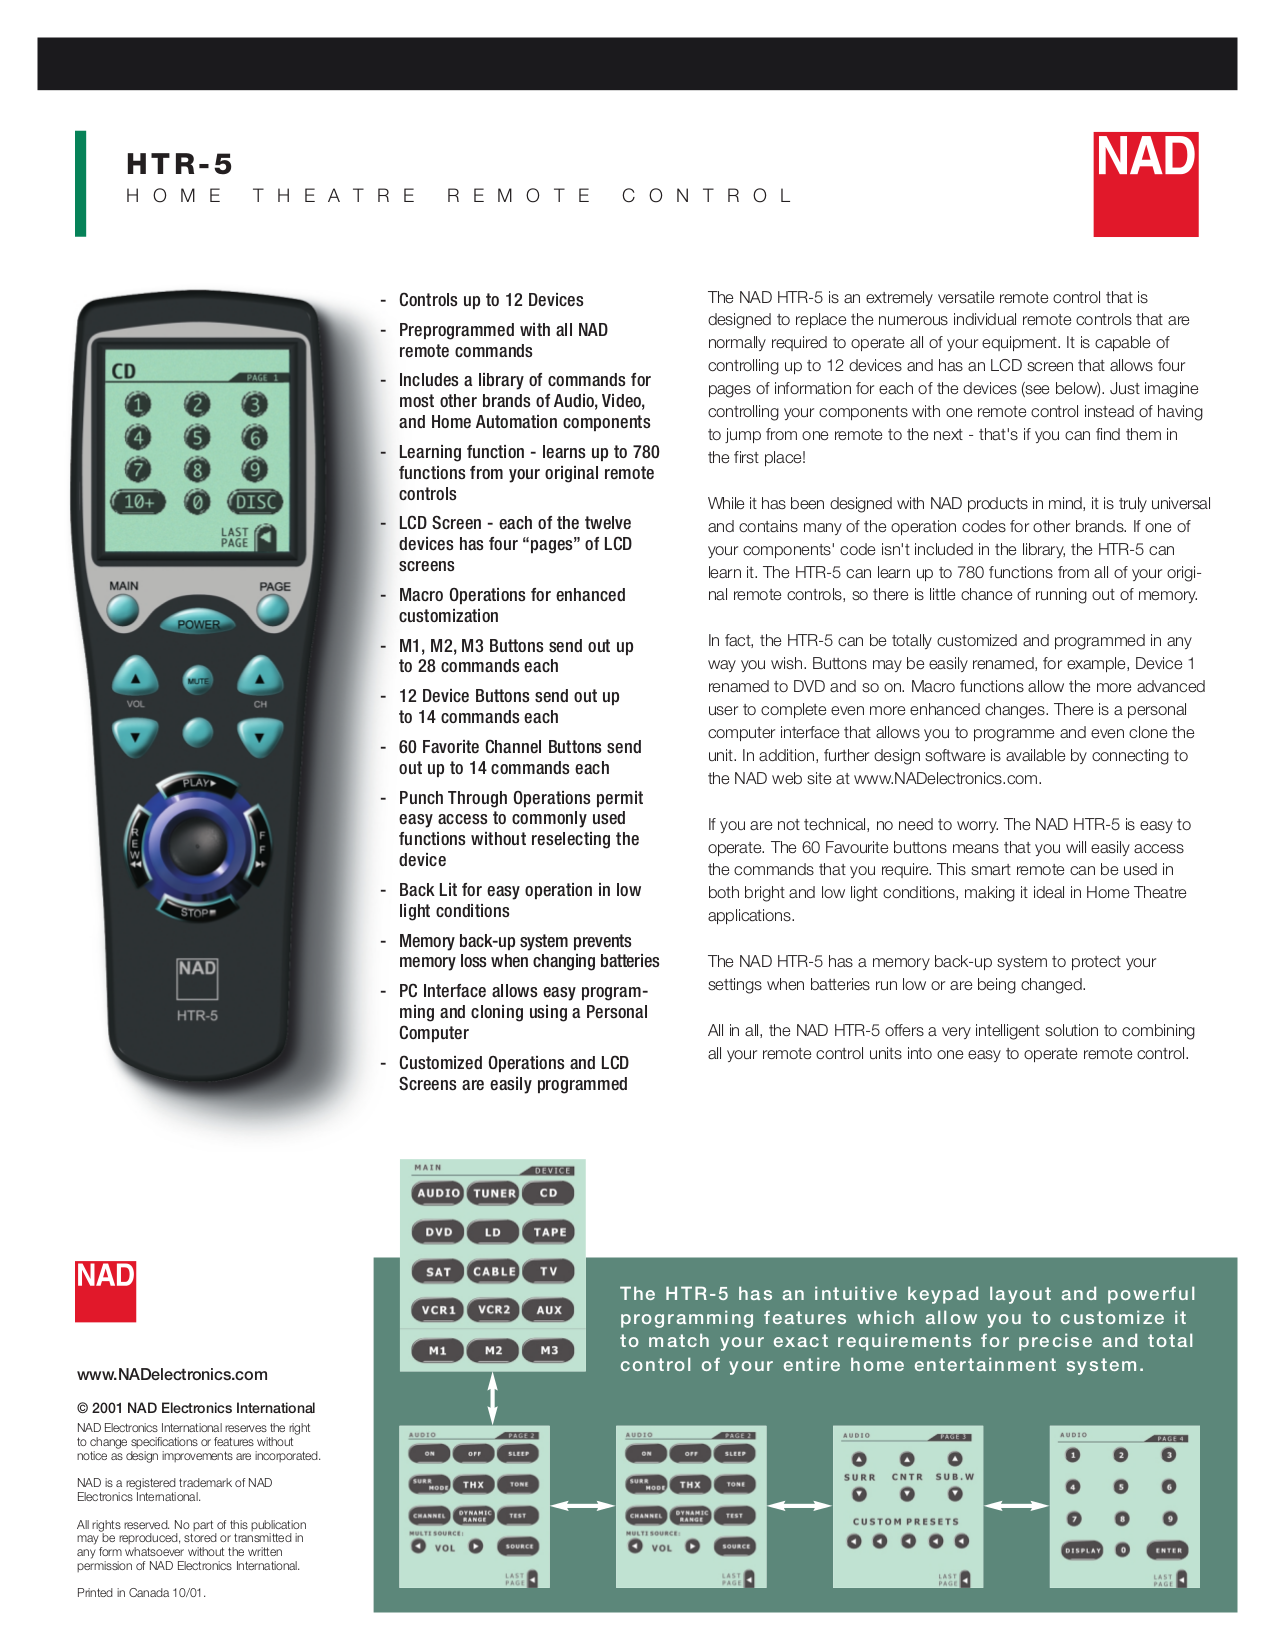 pdf for NAD Remote Control HTR-5 manual